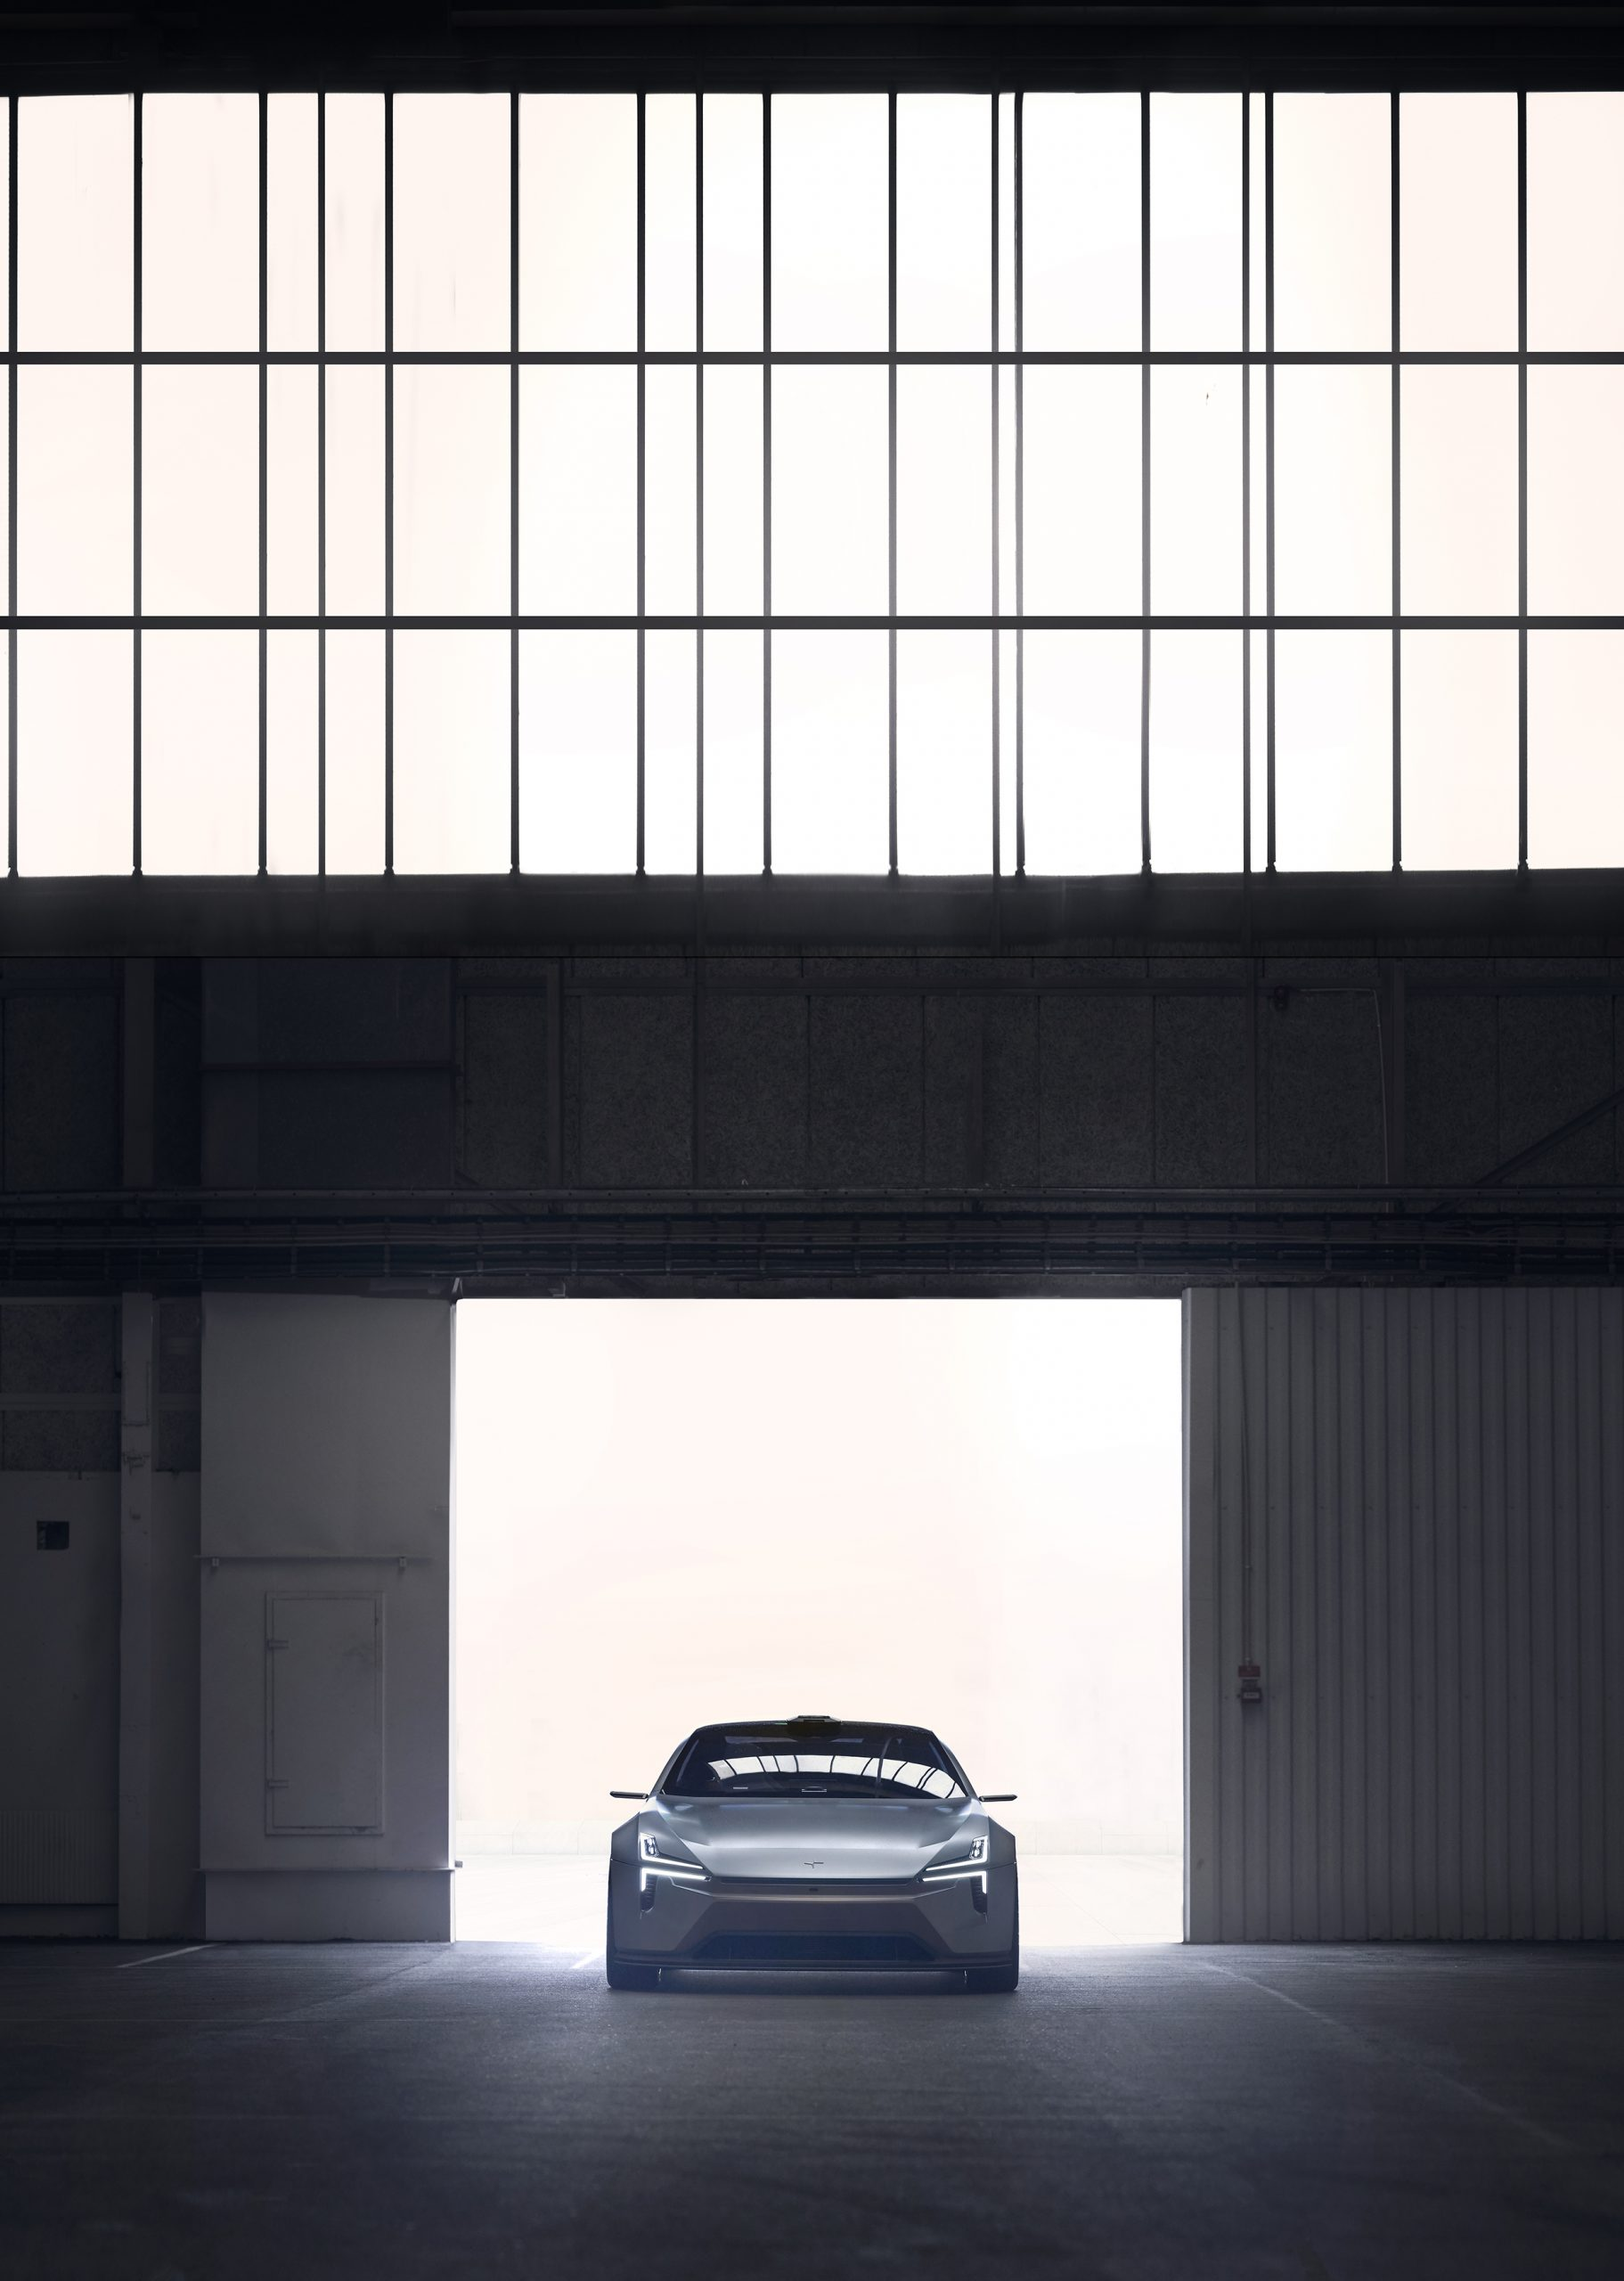 polestar precept vertical